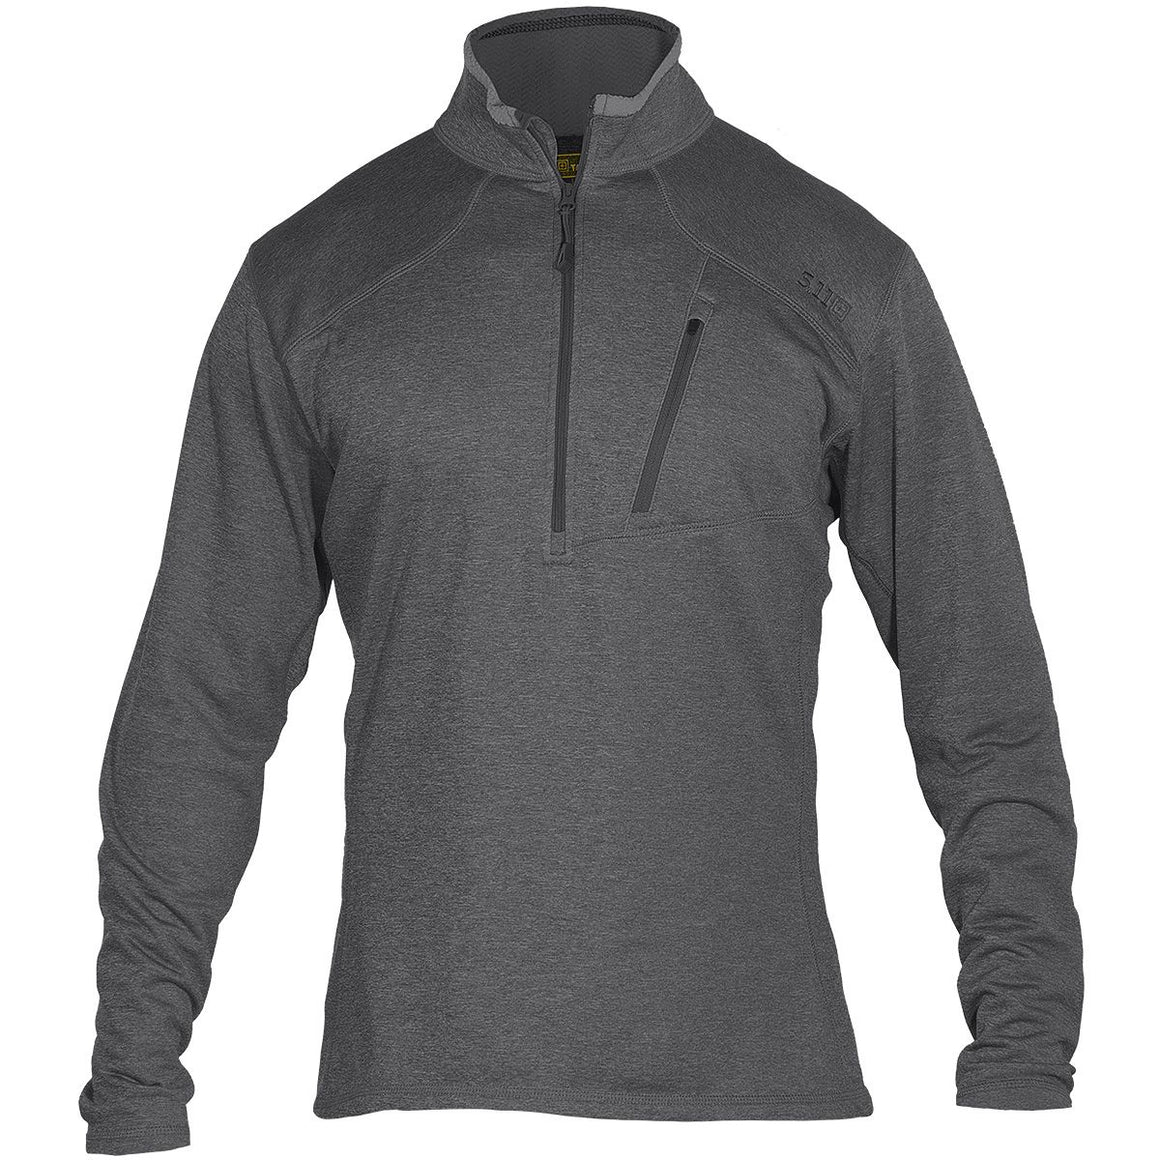 5.11 Recon Half Zip Shirt